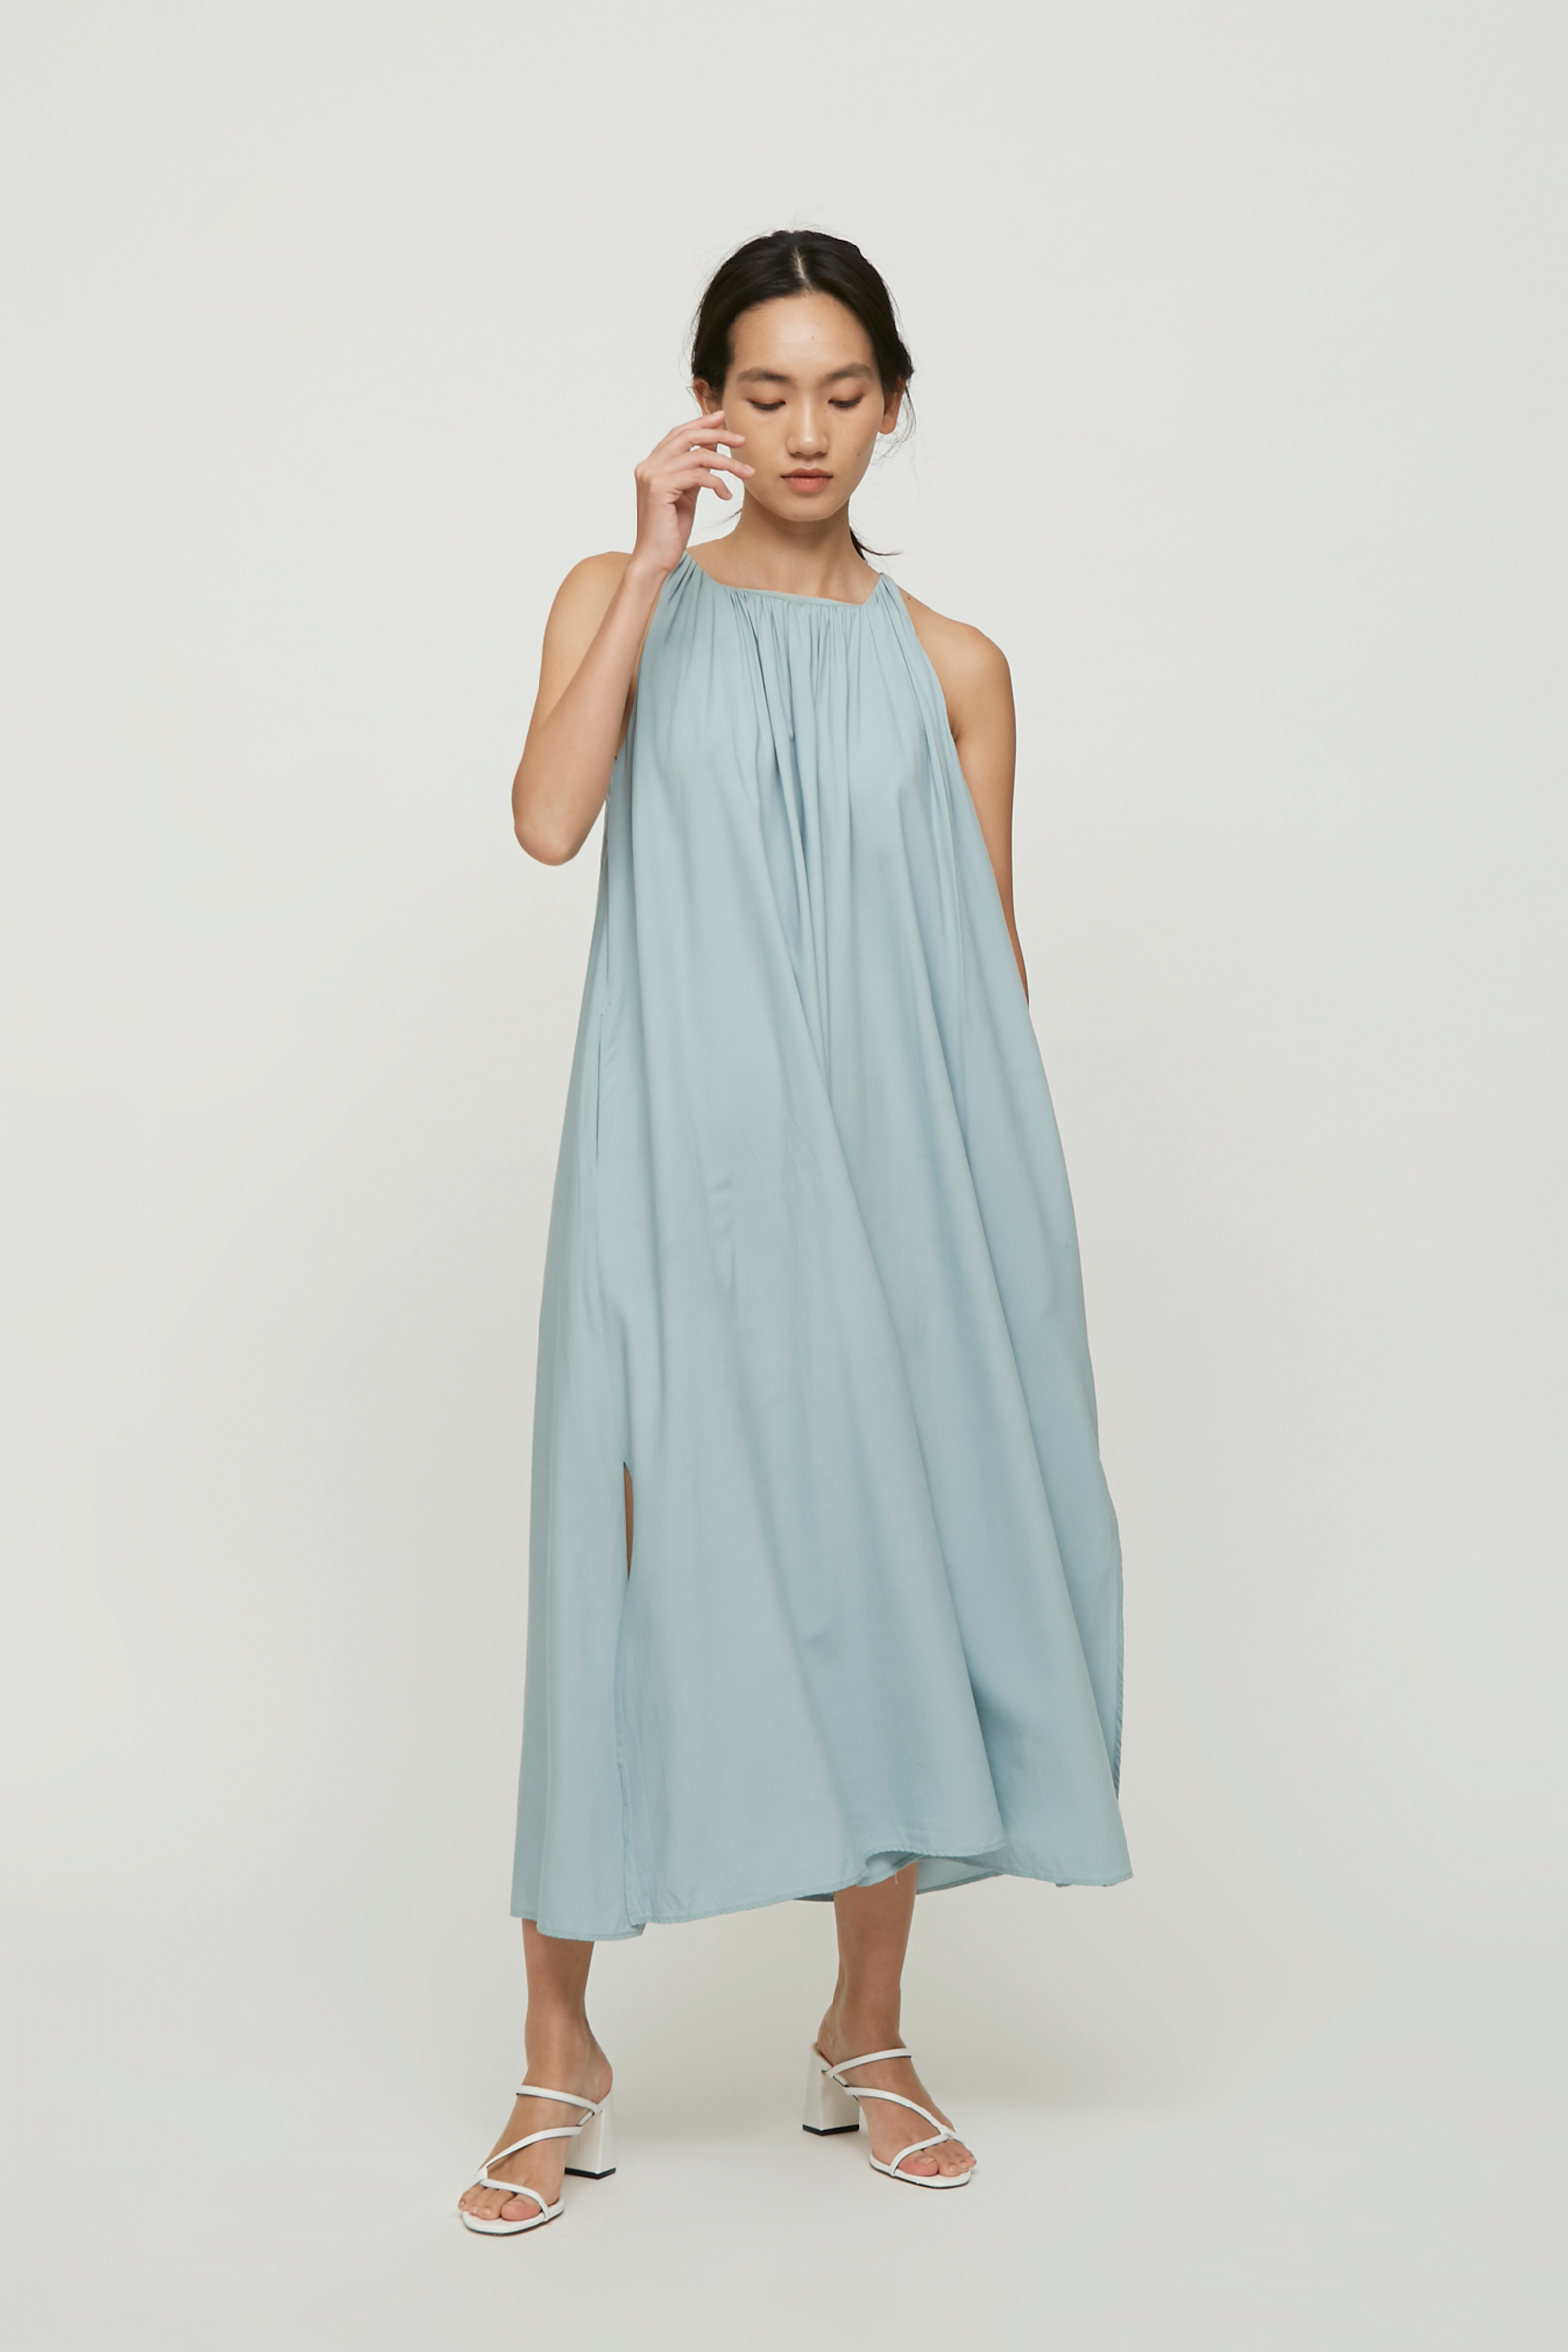 d369011c1c Square-Neck Maxi Dress - Our Second Nature